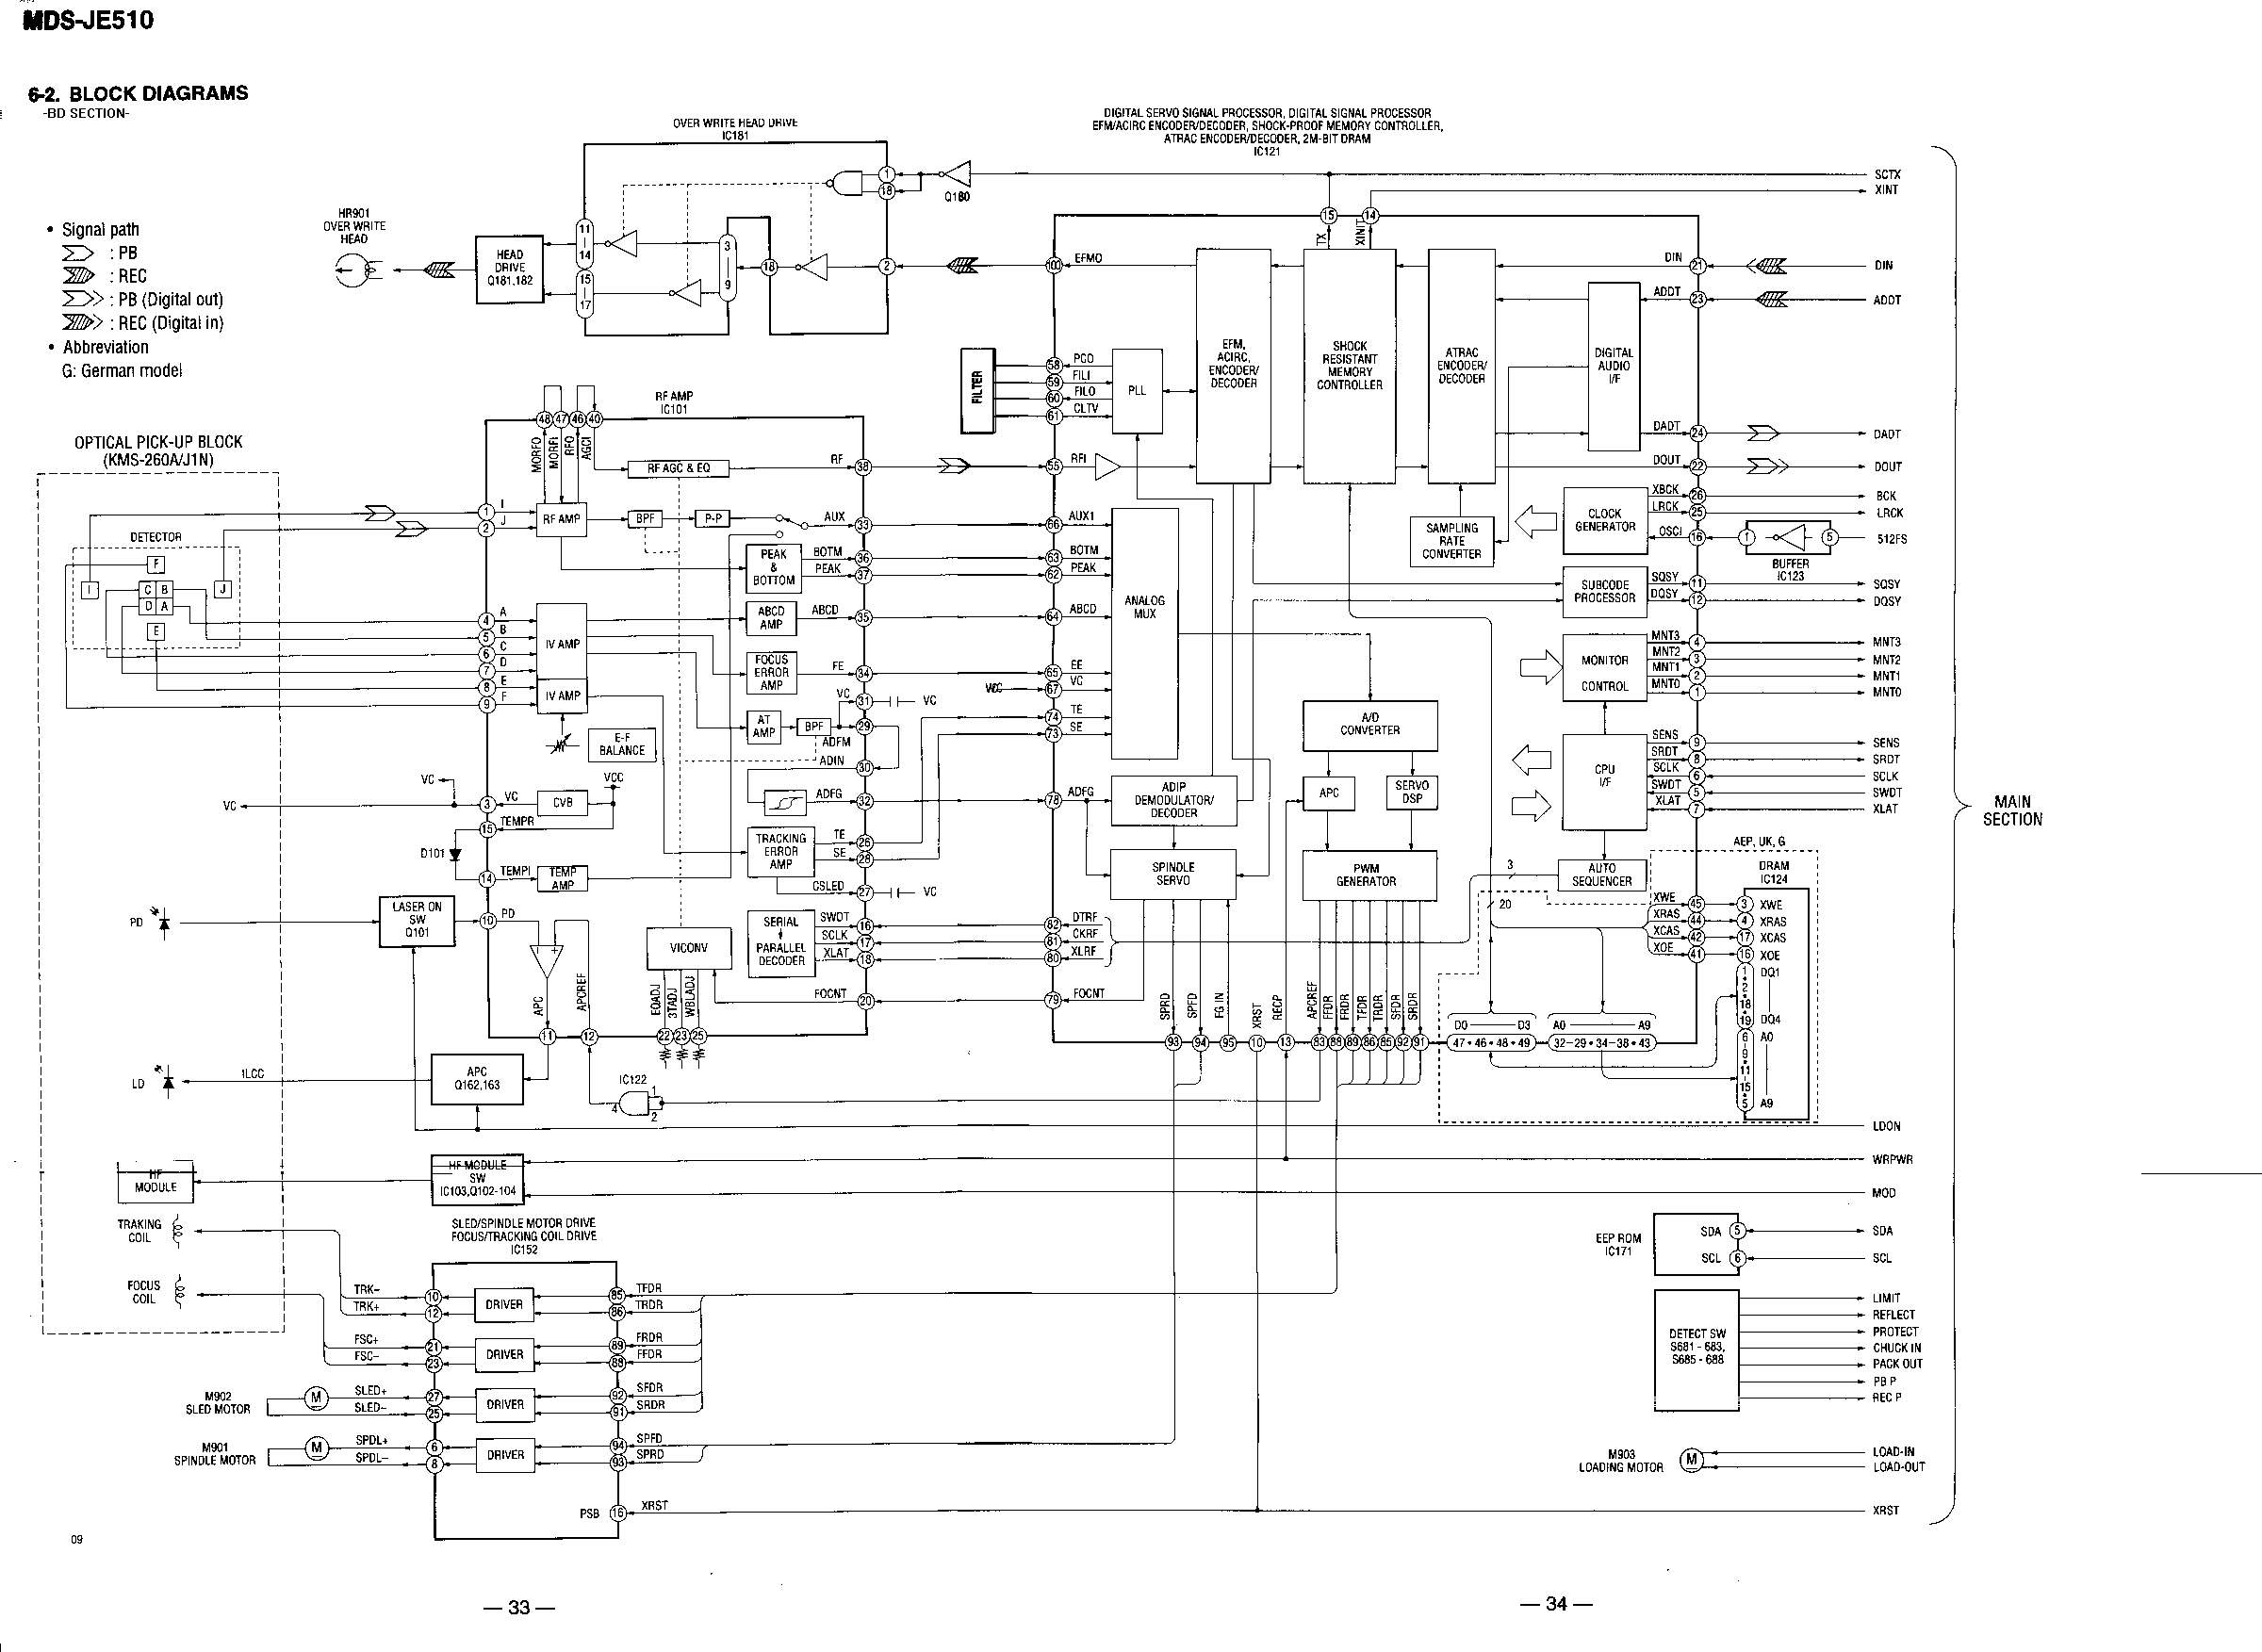 Old Minidisc Page News 1997 2001 Yamaha R1 Wiring Harness Diagram